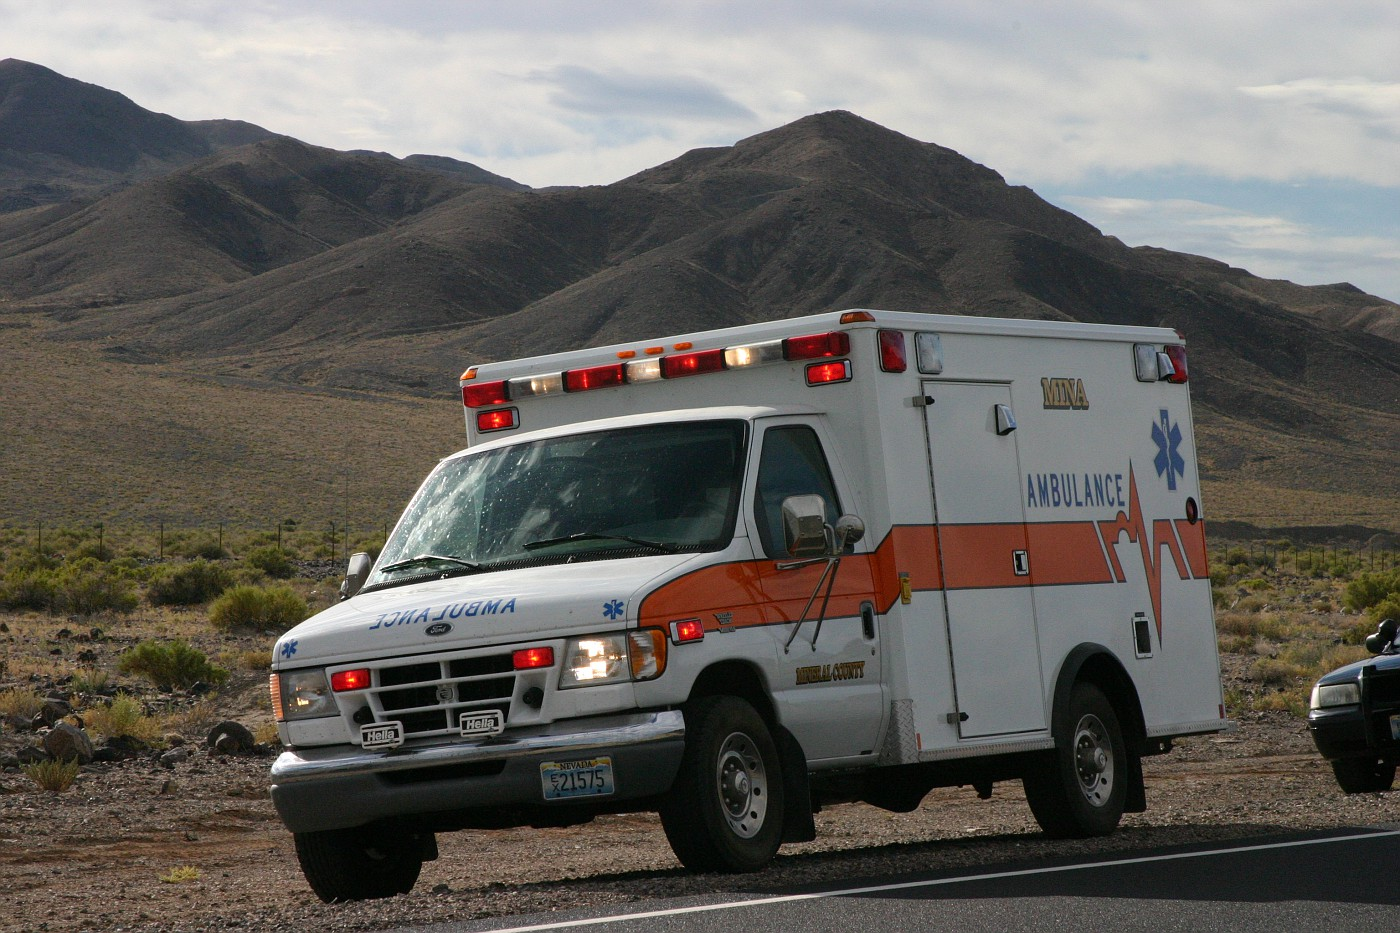 NV - Mina Ambulance